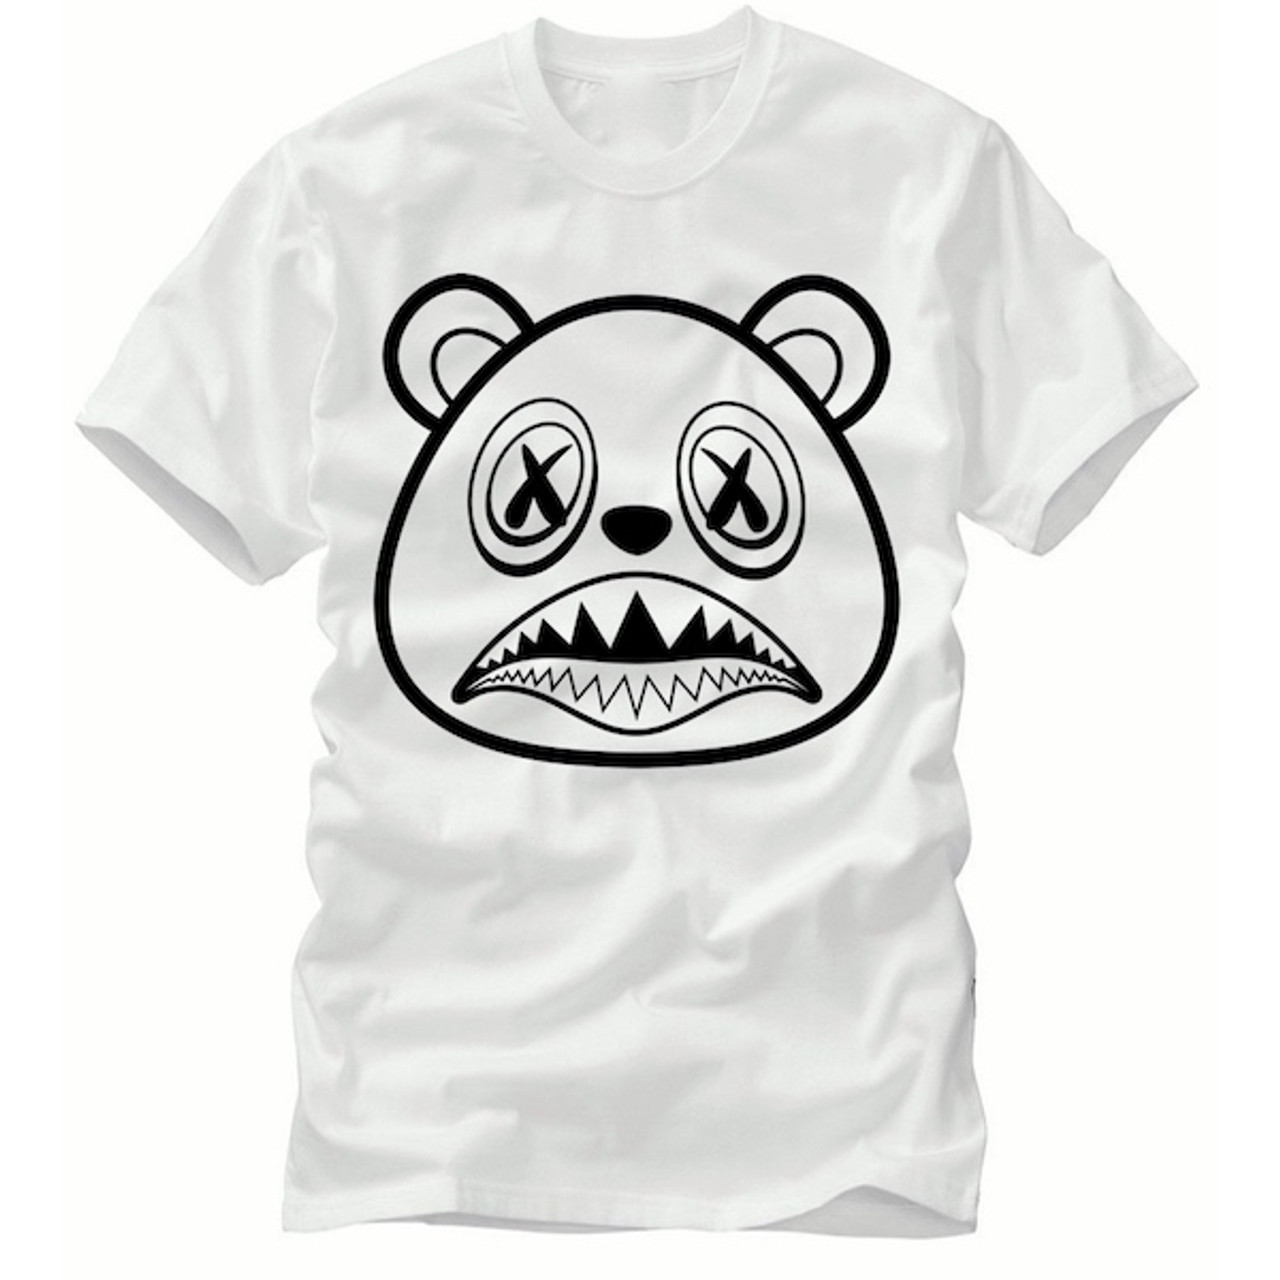 ac7cd99ecd0 Baws Bear Logo White T-Shirt - This tee is a NZ Exclusive to KCT ...